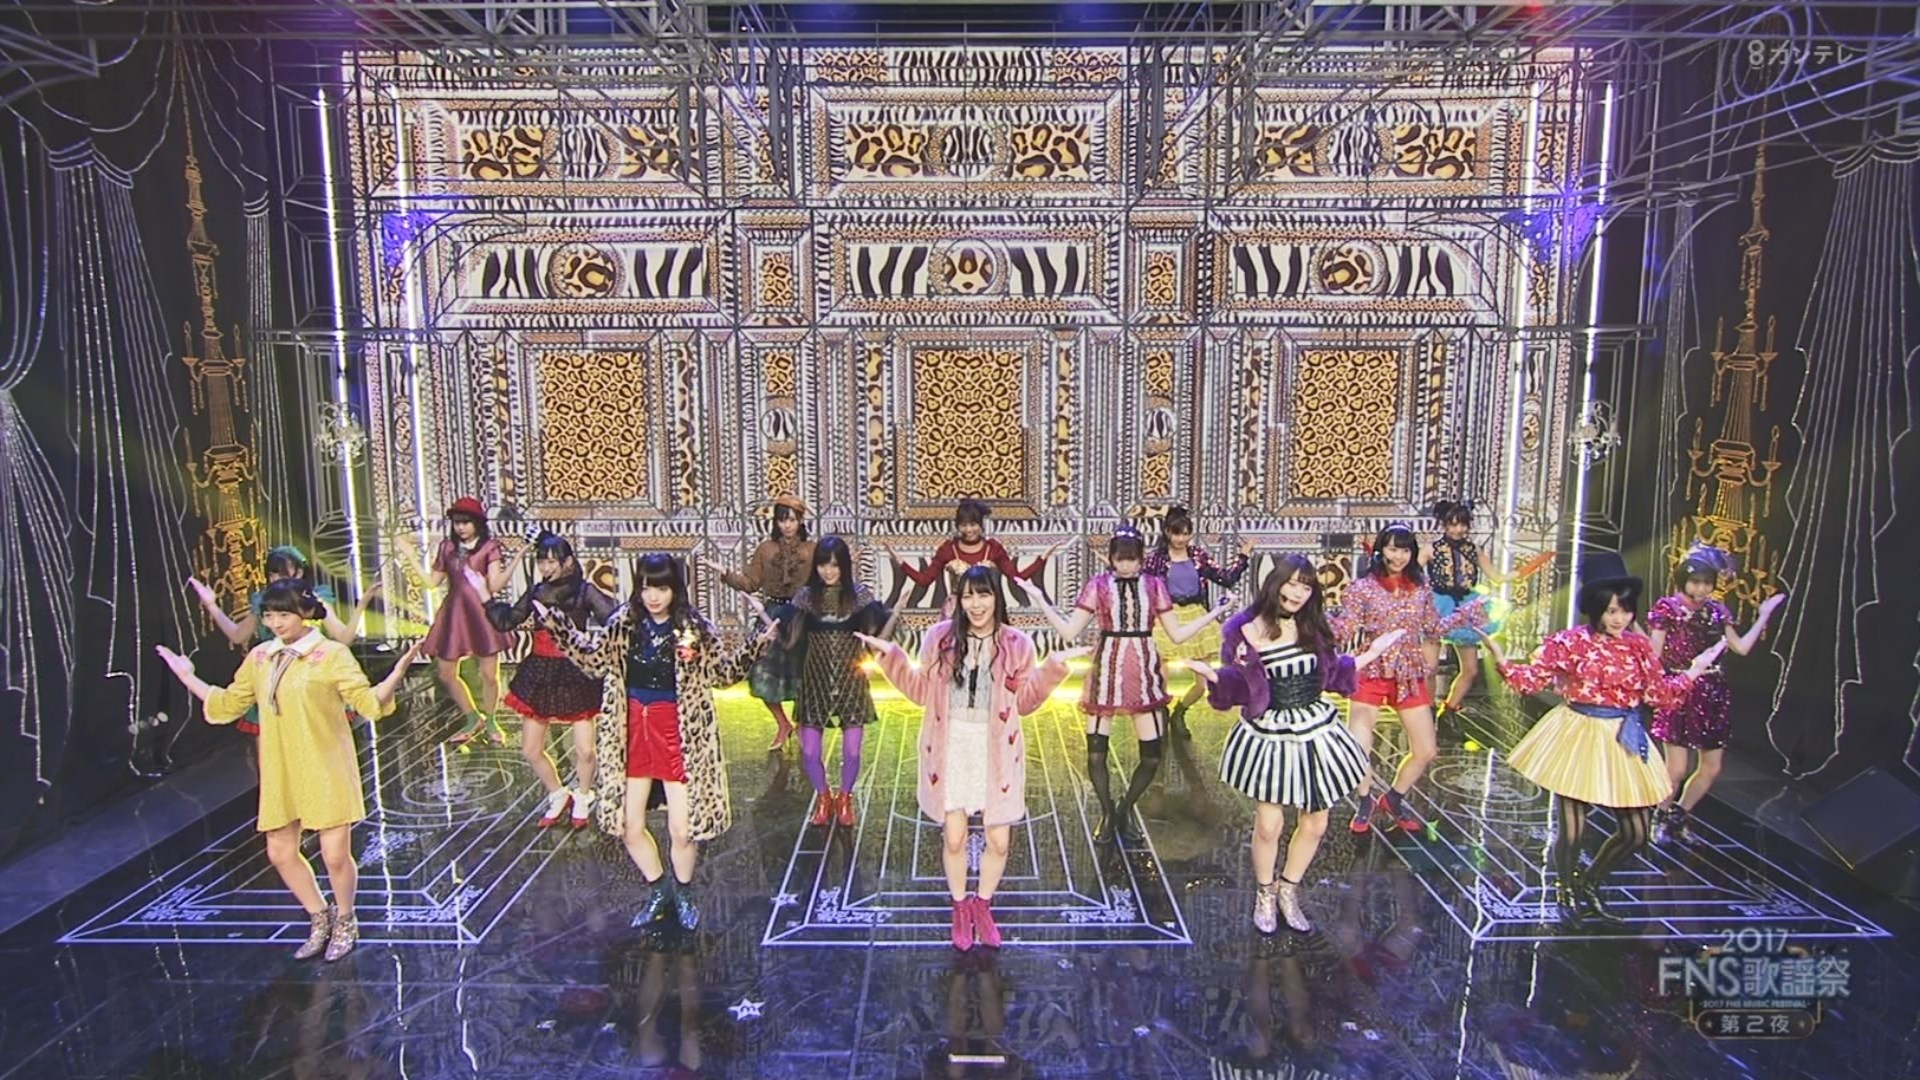 2017FNS歌謡祭第2夜・NMB48ワロタピーポーキャプ-103